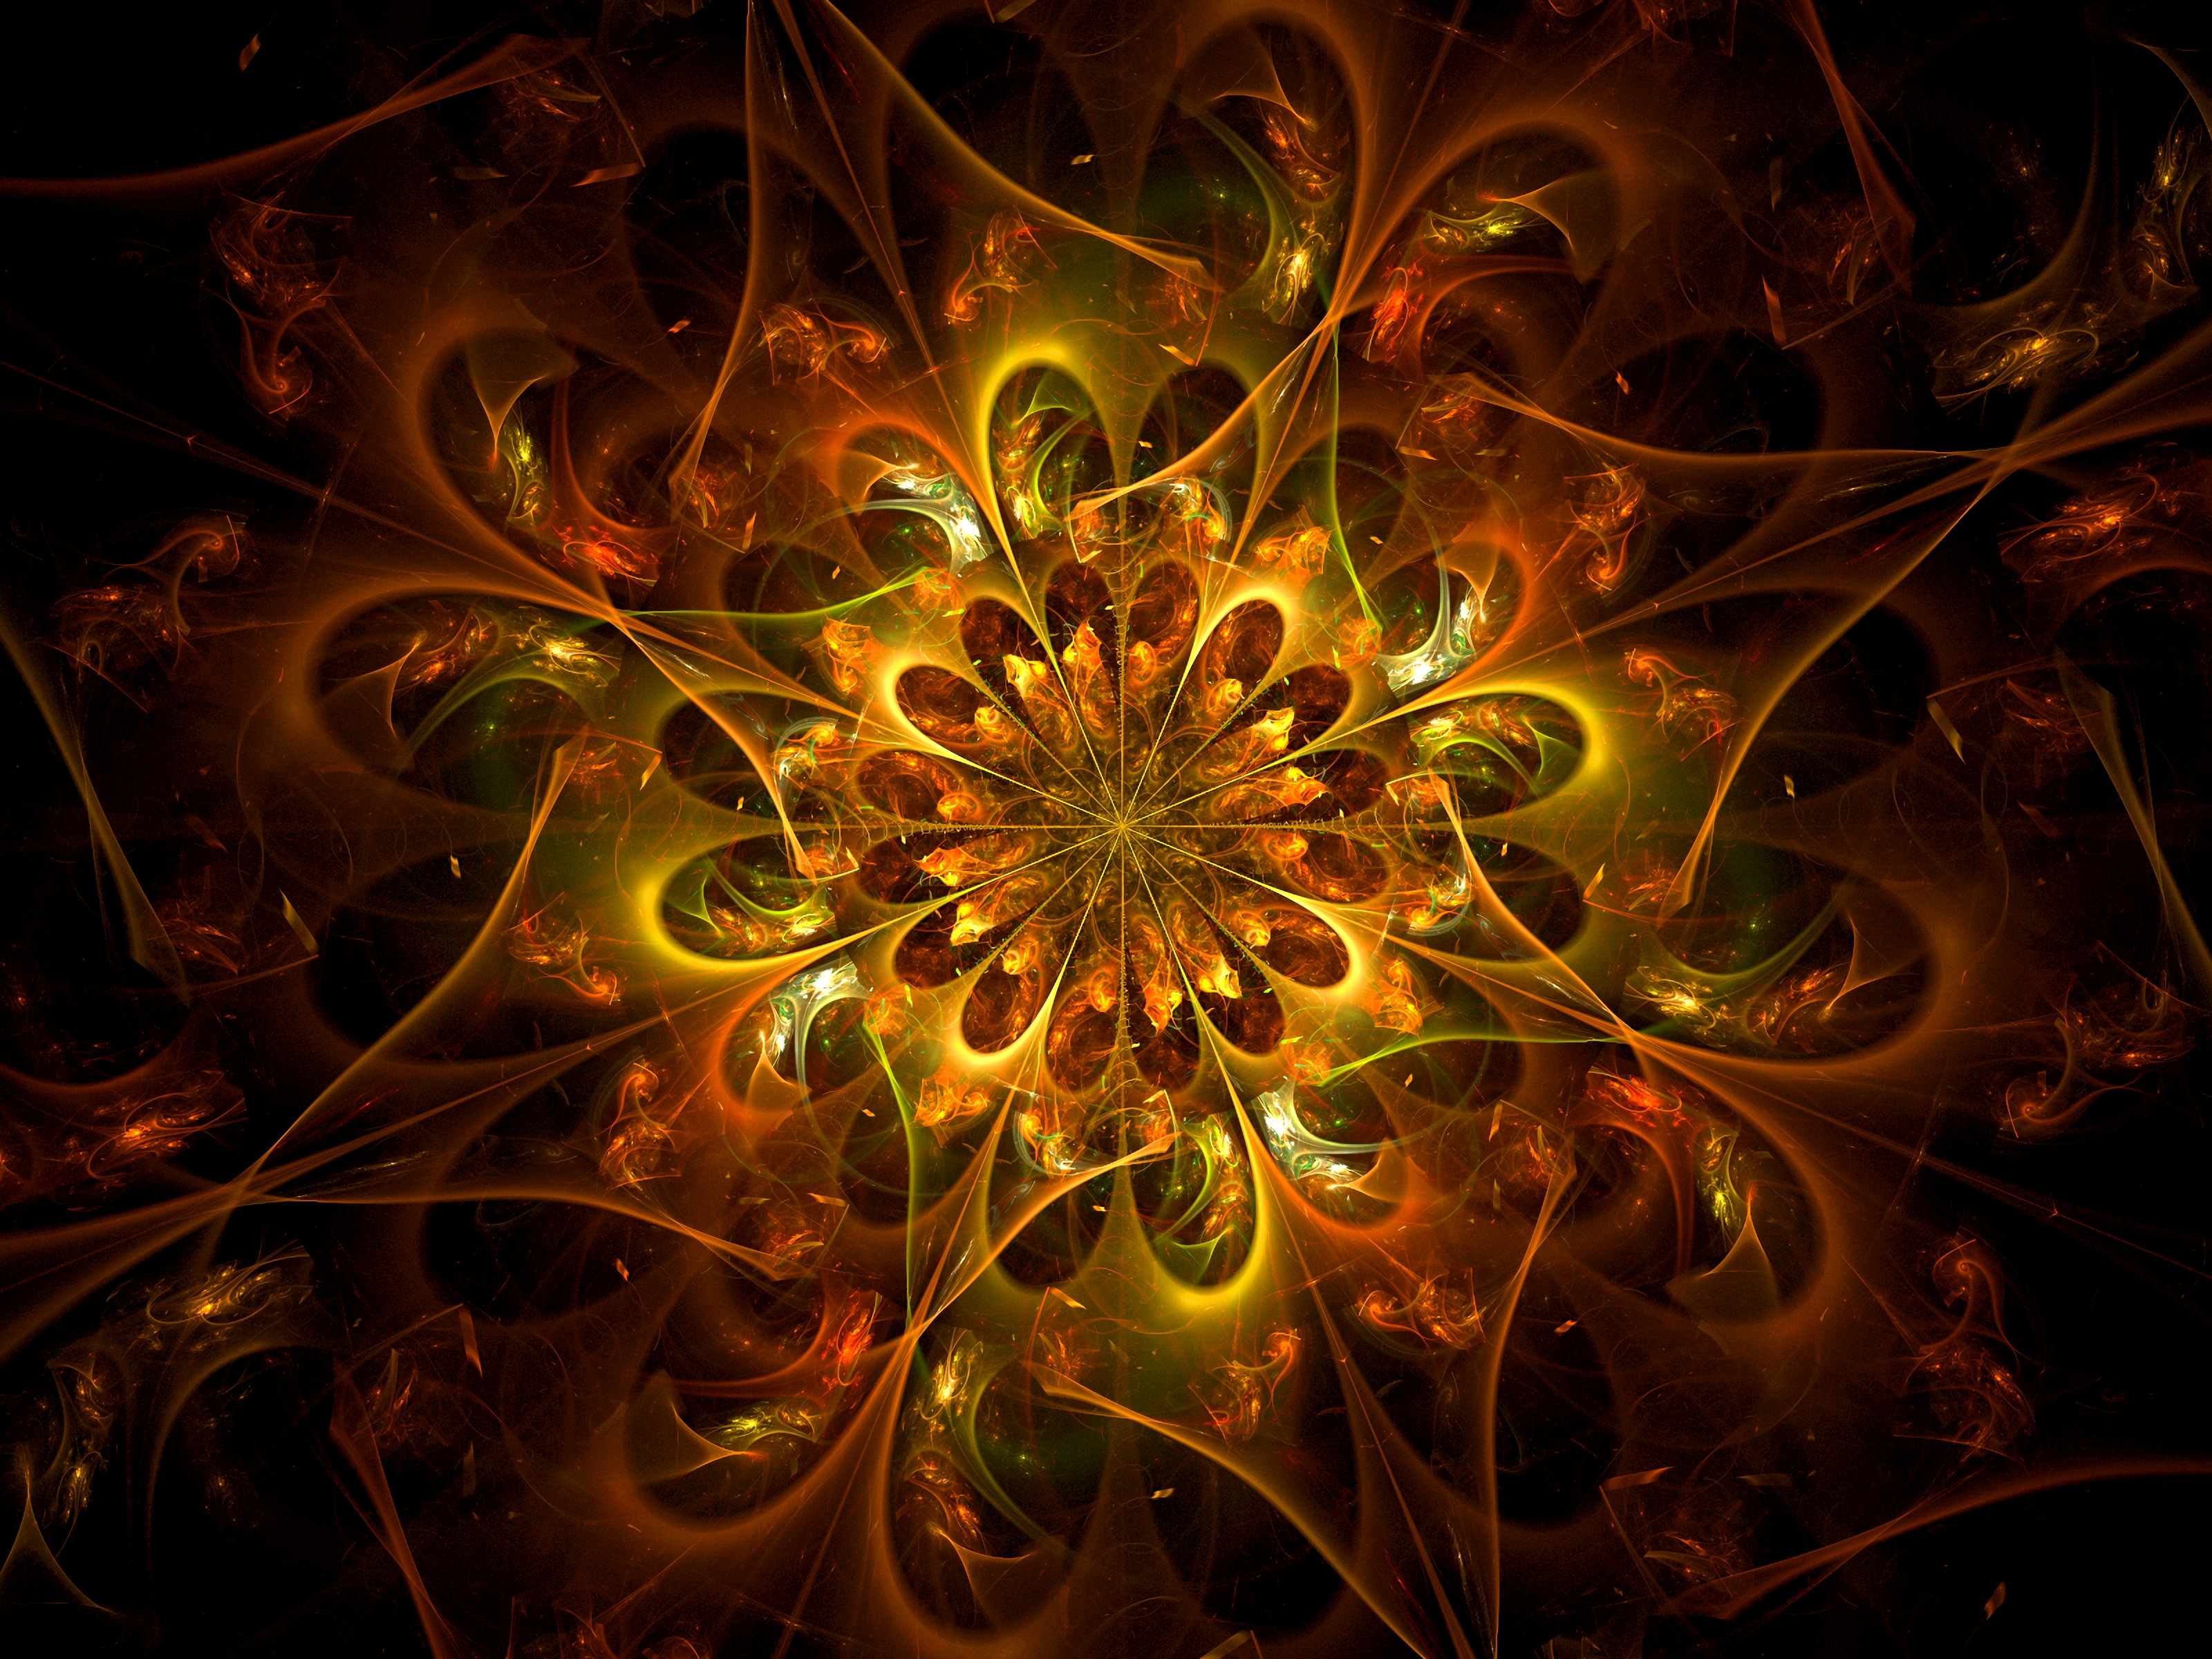 127081 download wallpaper Abstract, Fractal, Pattern, Bright, Confused, Intricate screensavers and pictures for free